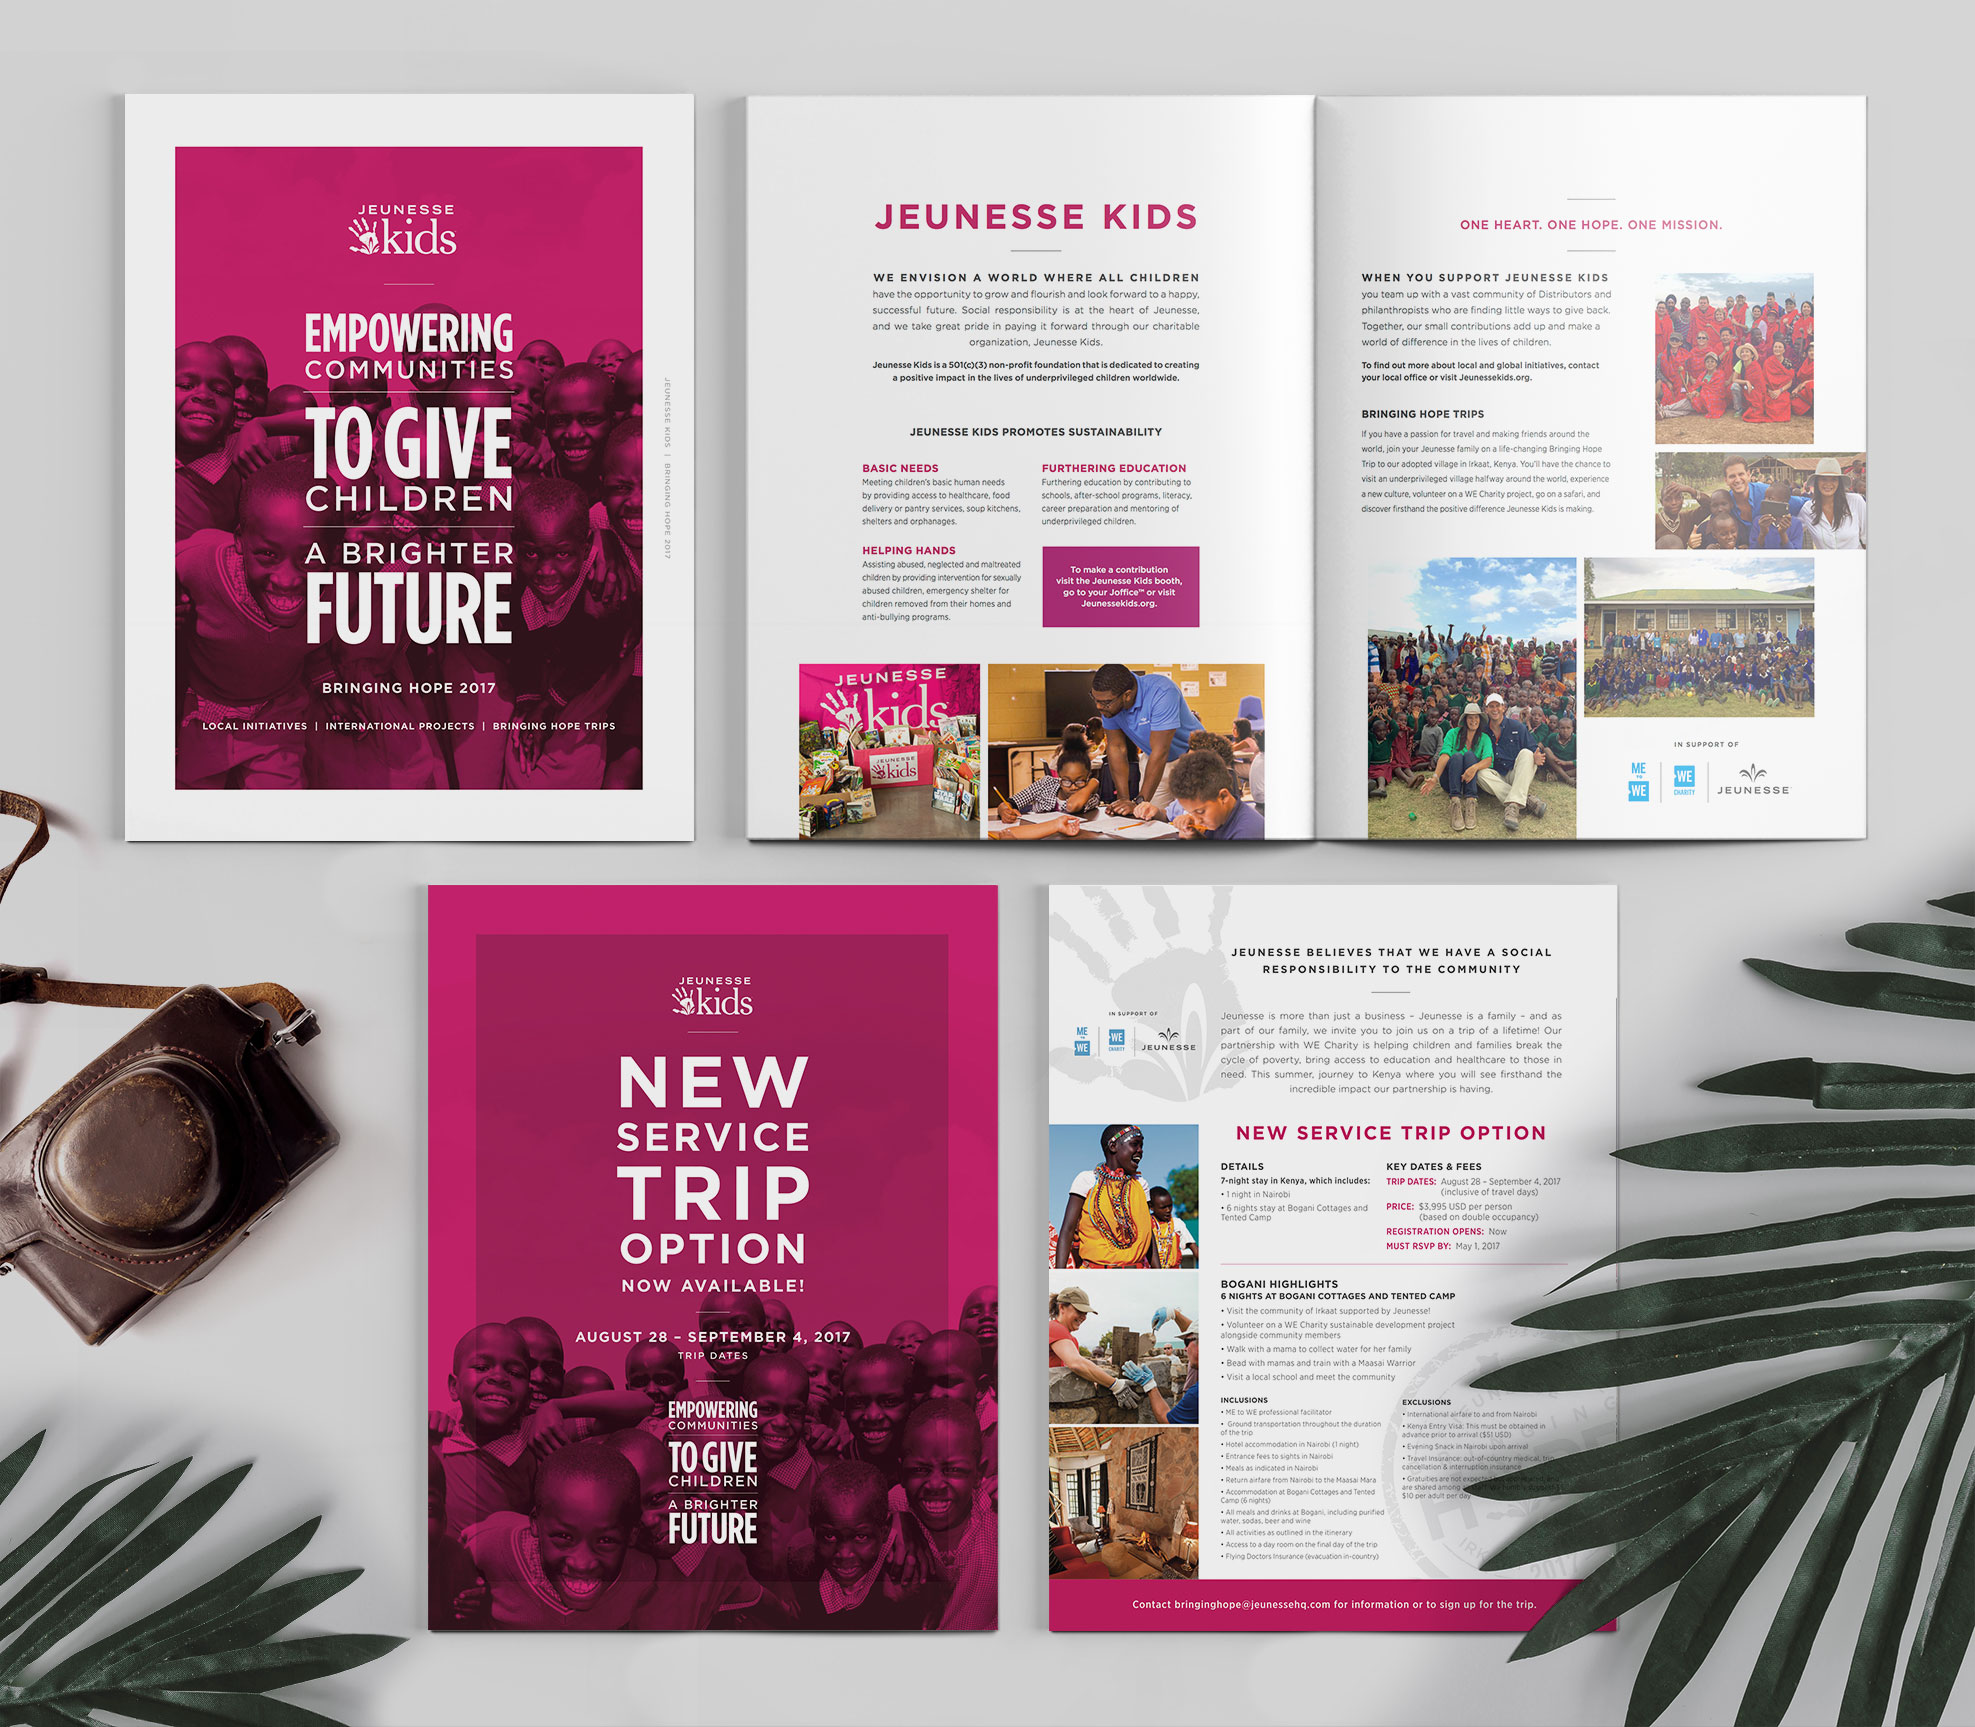 Jeunesse Kids collateral